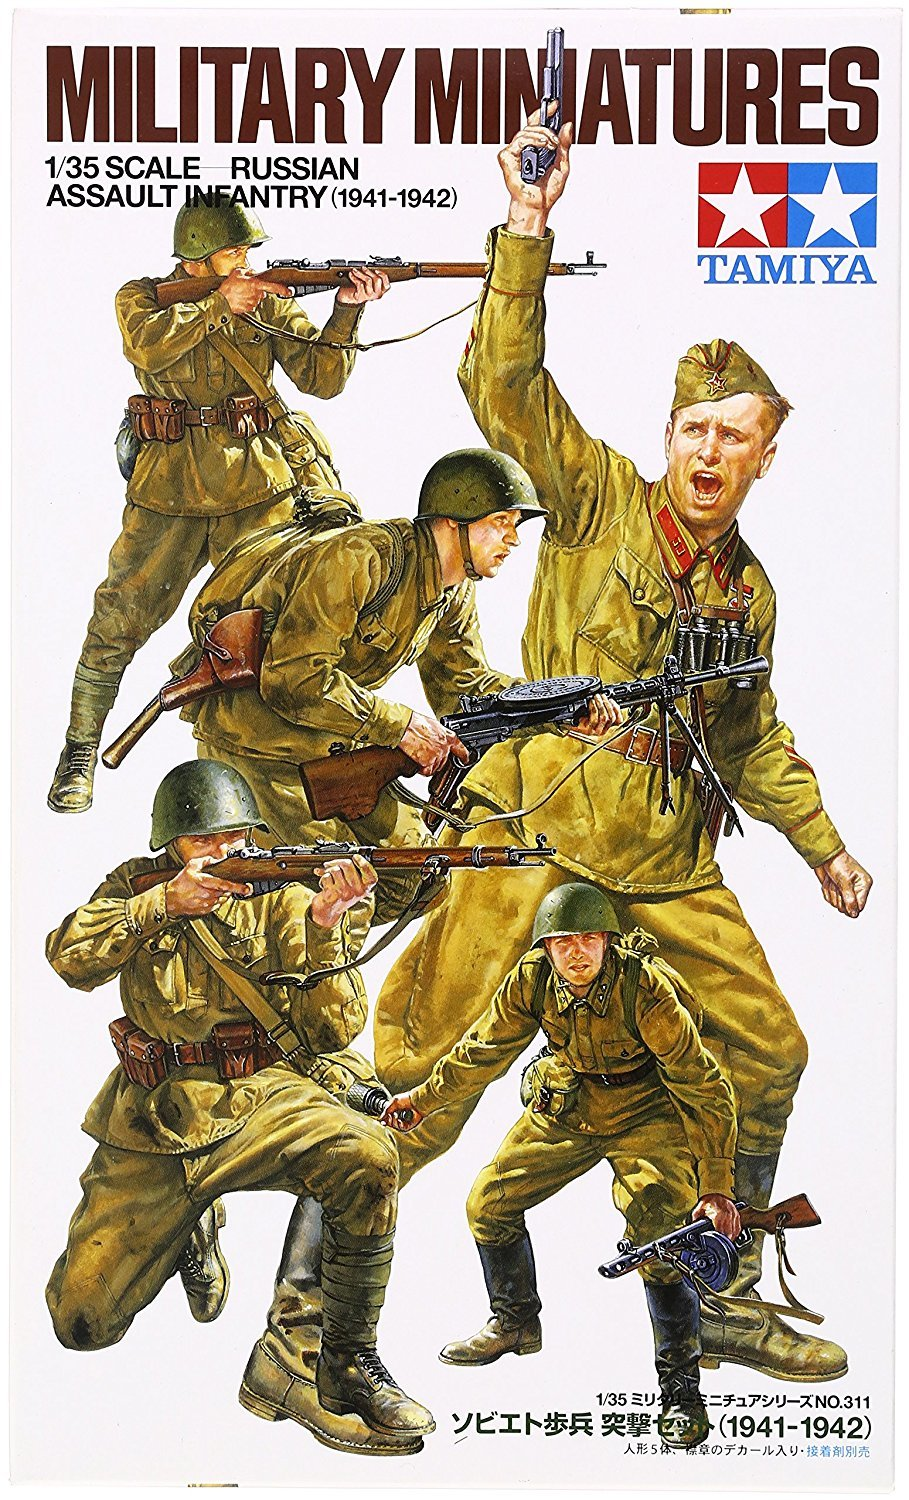 Tamiya 1/35 Russian Assault Infantry - 1941-1942 - Model Kit image